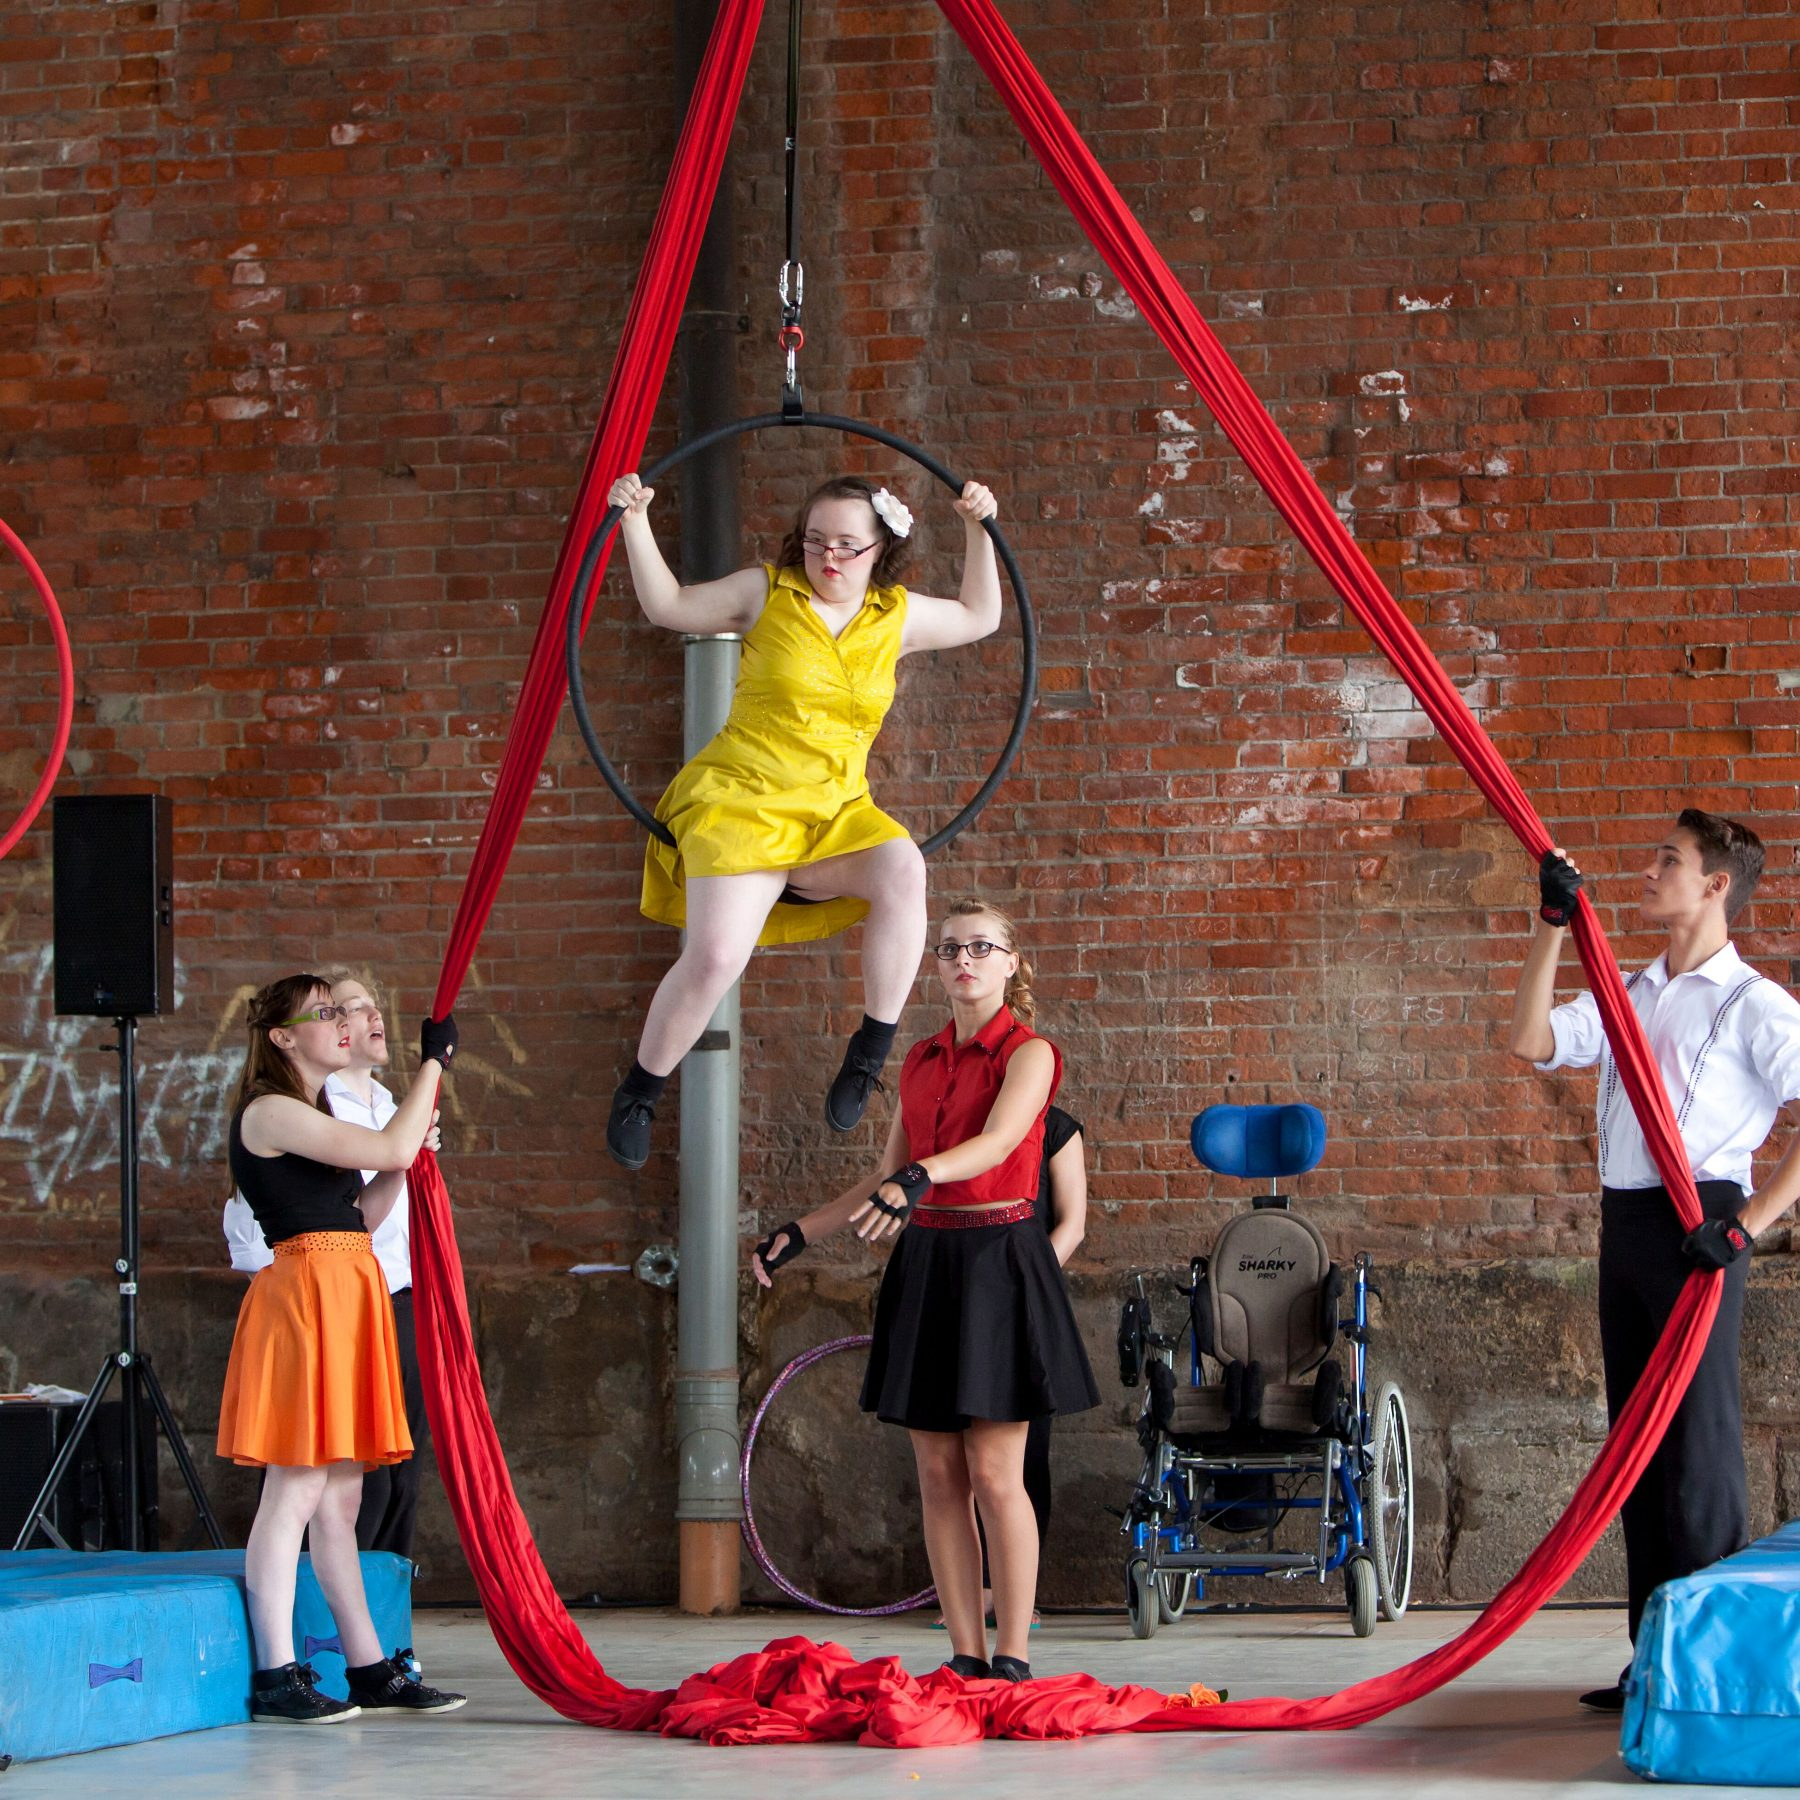 A young integrated group of circus performers wear bright colours as they perform their show. A girl hangs from an aerial hoop whilst two others hold red aerial silks.